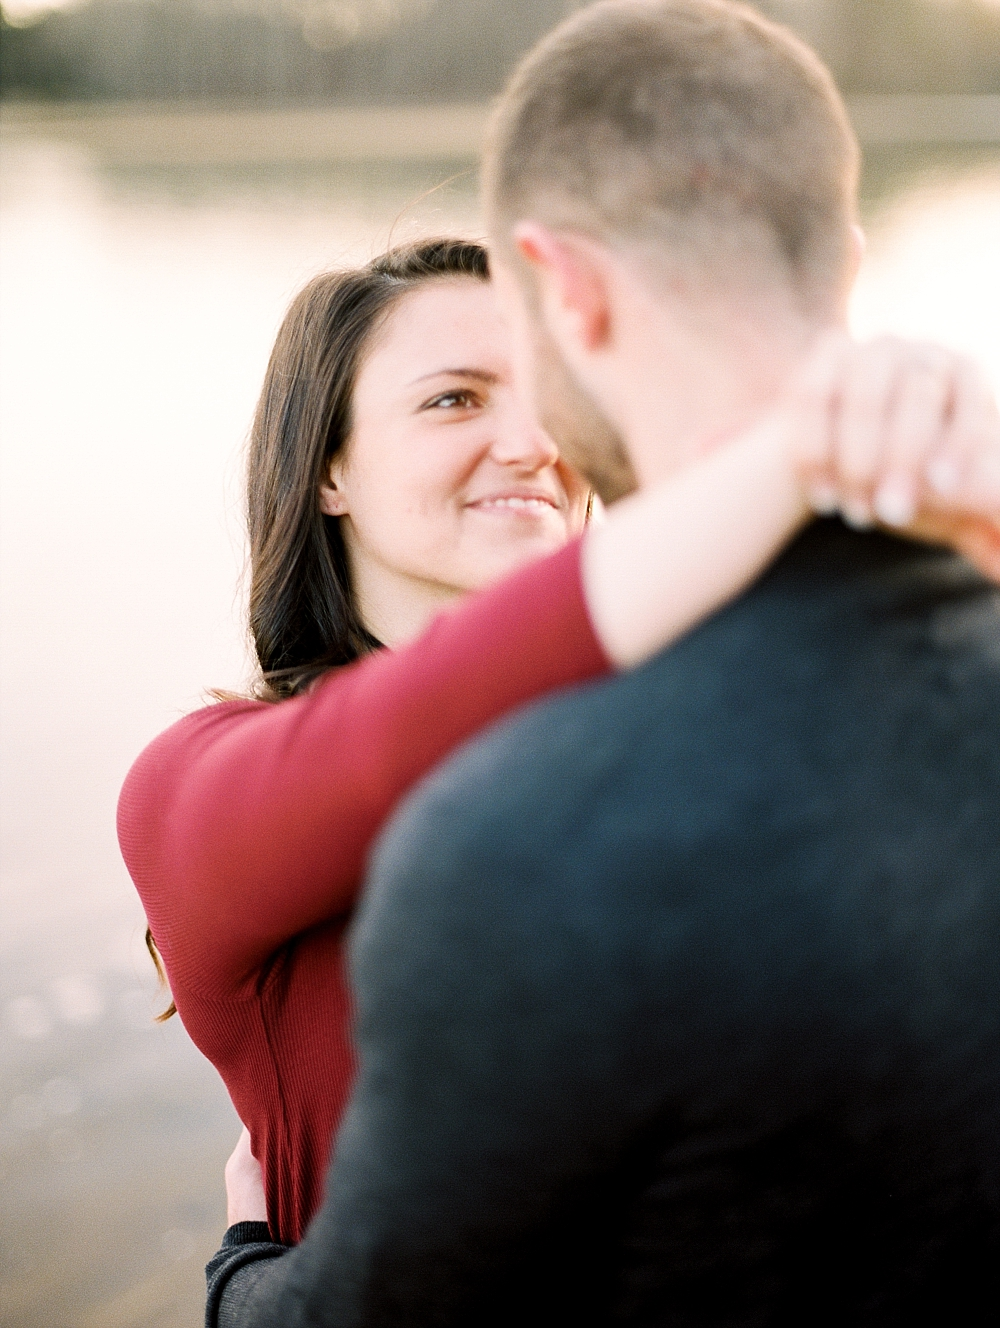 JuicebeatsPhotography_KnoxvilleEngagement_Kristina&Ben_0036.jpg